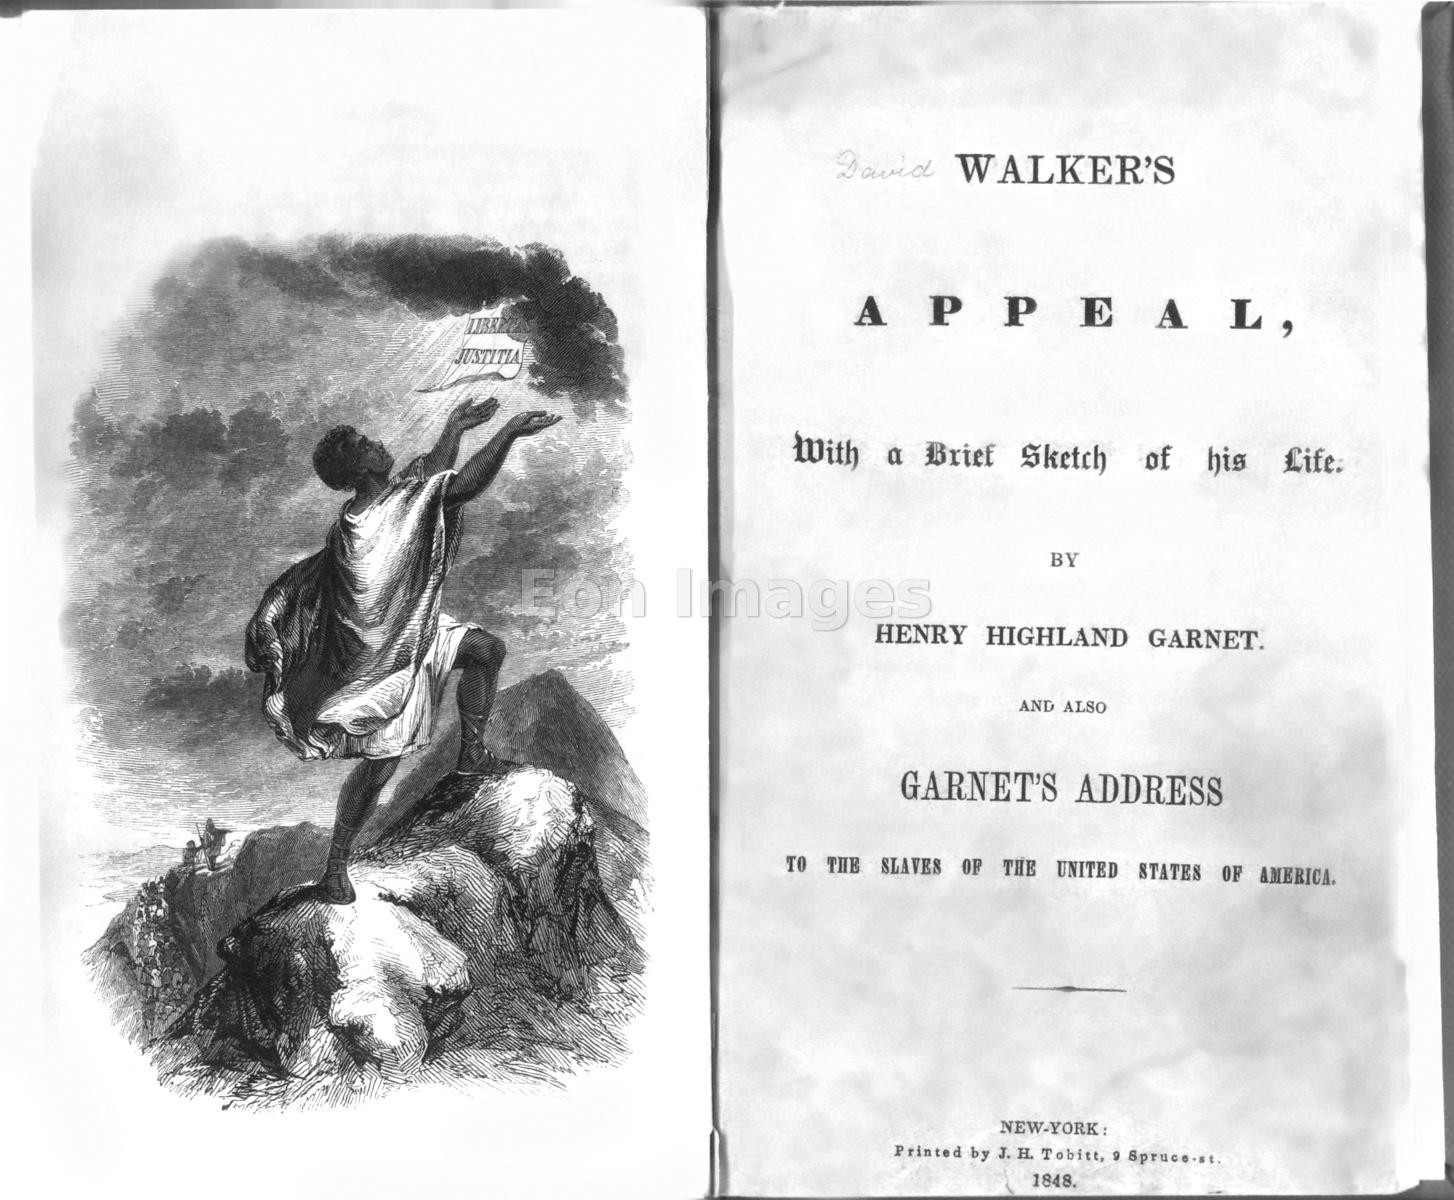 Title page and portrait from manuscript by David Walker